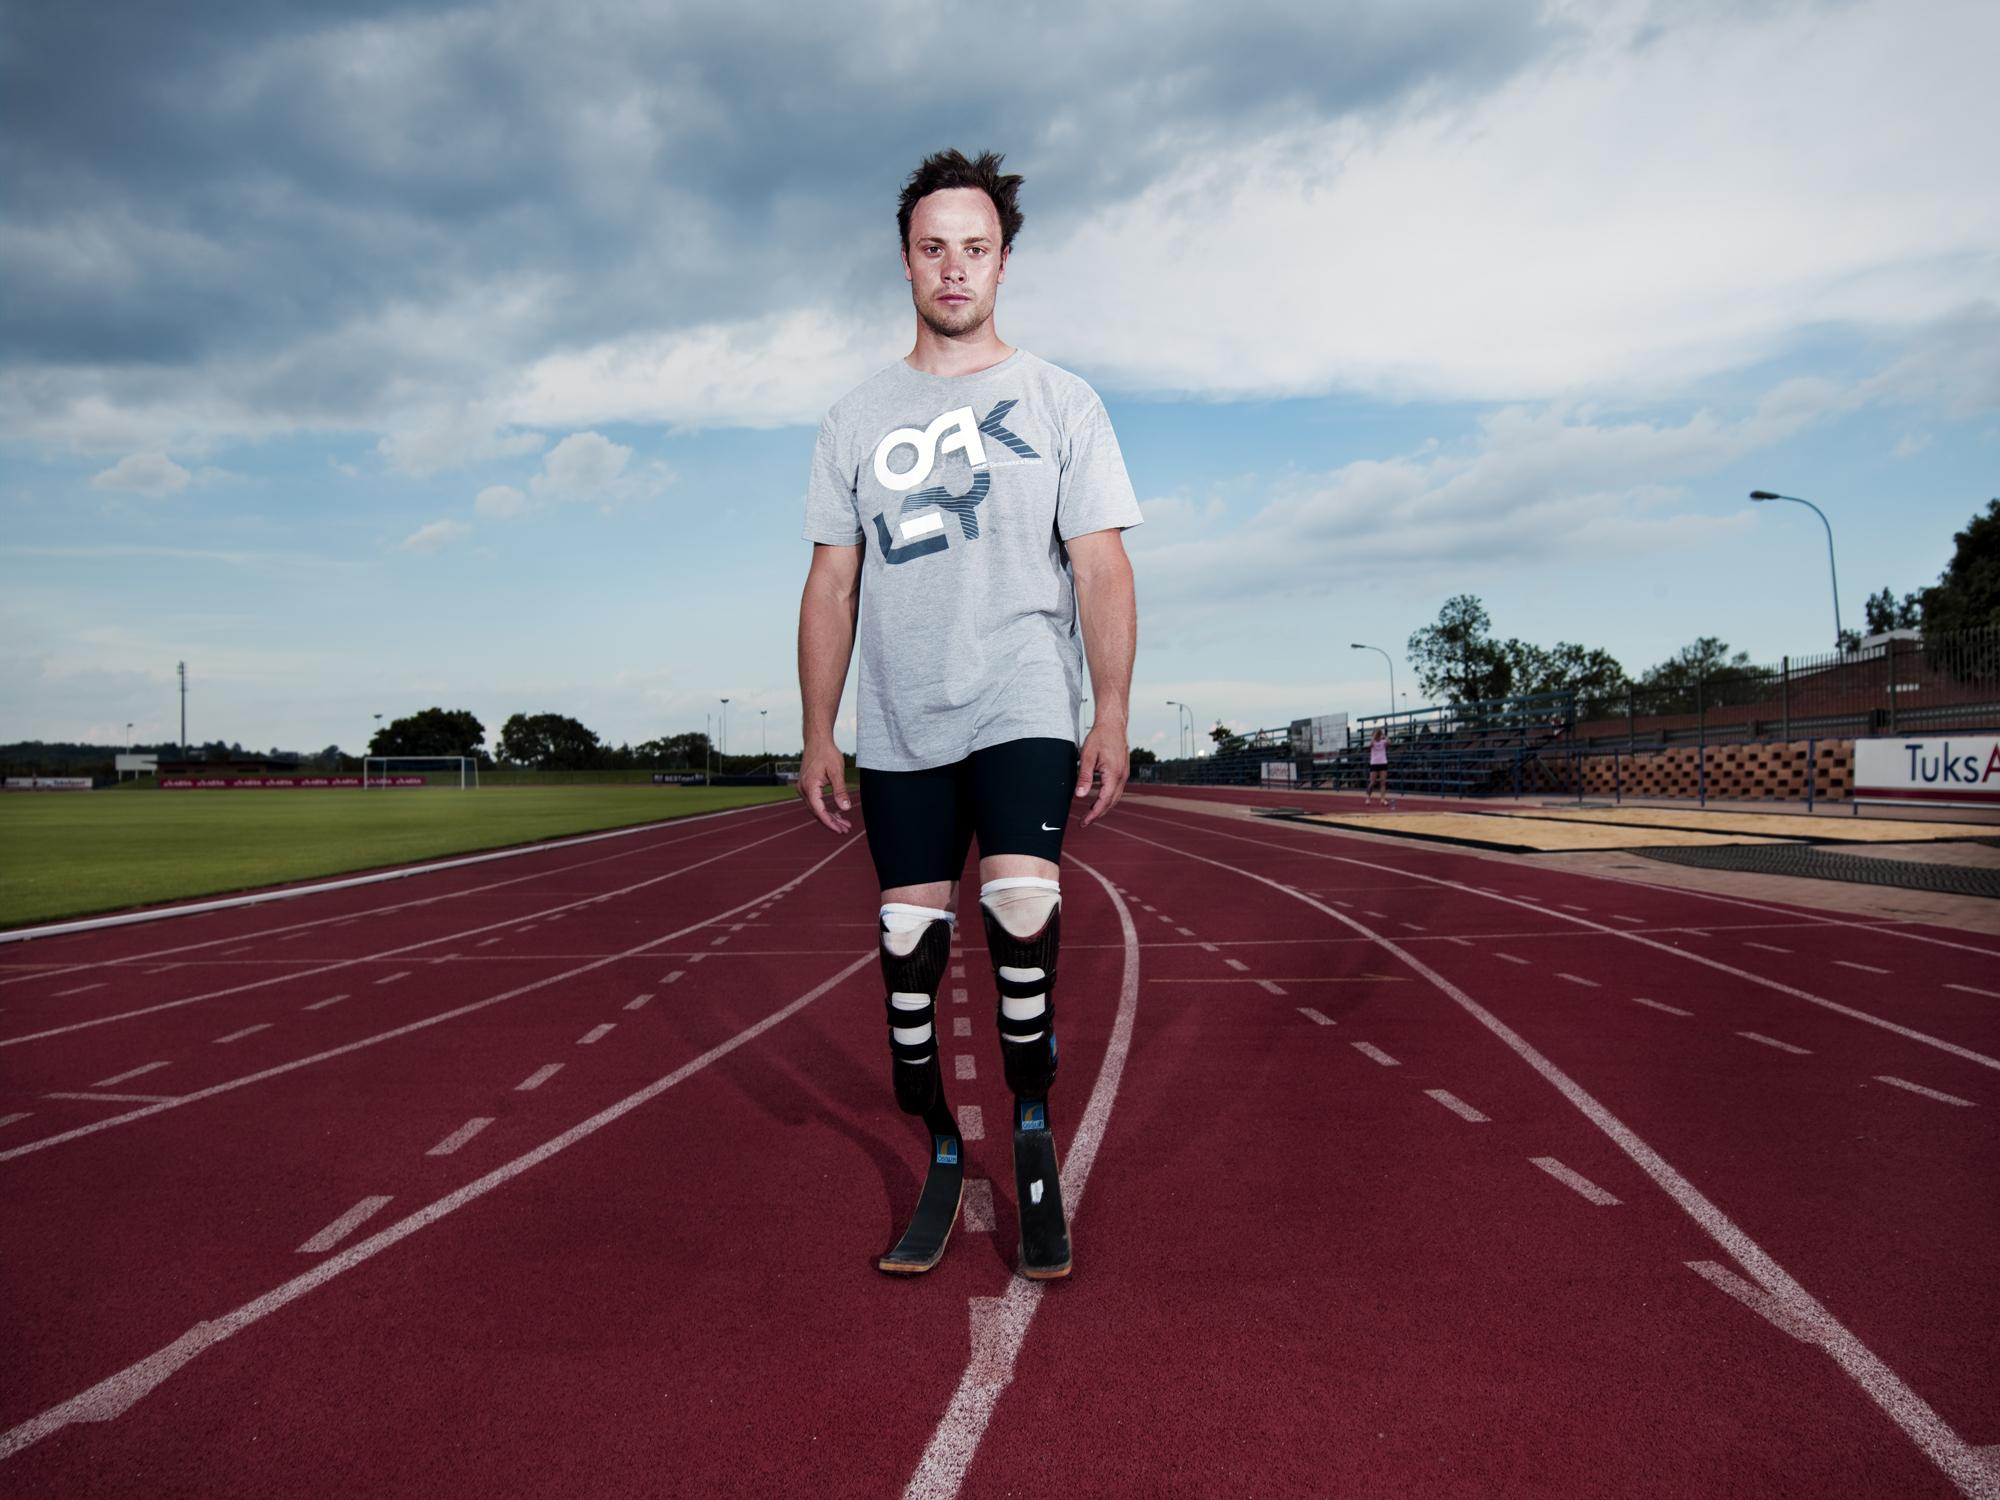 "Pep Bonet / Noor. November 2009. South Africa. ¨Remarkable South Africans"" Oscar Pistorius. ""More and more disabled people around the world are making a mental stand to overcome their disabilities and to live life, and I think that is phenomenal"". Dubbed by the media as 'the fastest man on no legs', Oscar Pistorius is a Paralympic champion and world record holder of the 100, 200 and 400 metres. Oscar Pistorius was born without fibula in his leg. At the age of 11 months, his parents made the difficult decision to amputate his legs halfway between his knees and his ankles. Within six months, he had learned to walk on prosthetic legs and has never looked back. Oscar Pistorius does not see himself as disabled; he was just born without legs. His parents played an important role in never allowing their son to think of himself as disadvantaged. They challenged him to play sport from a very young age, from rugby to water polo, tennis to wrestling. Sport came naturally to him and helped him feel like any other boy growing up. (more text available)."